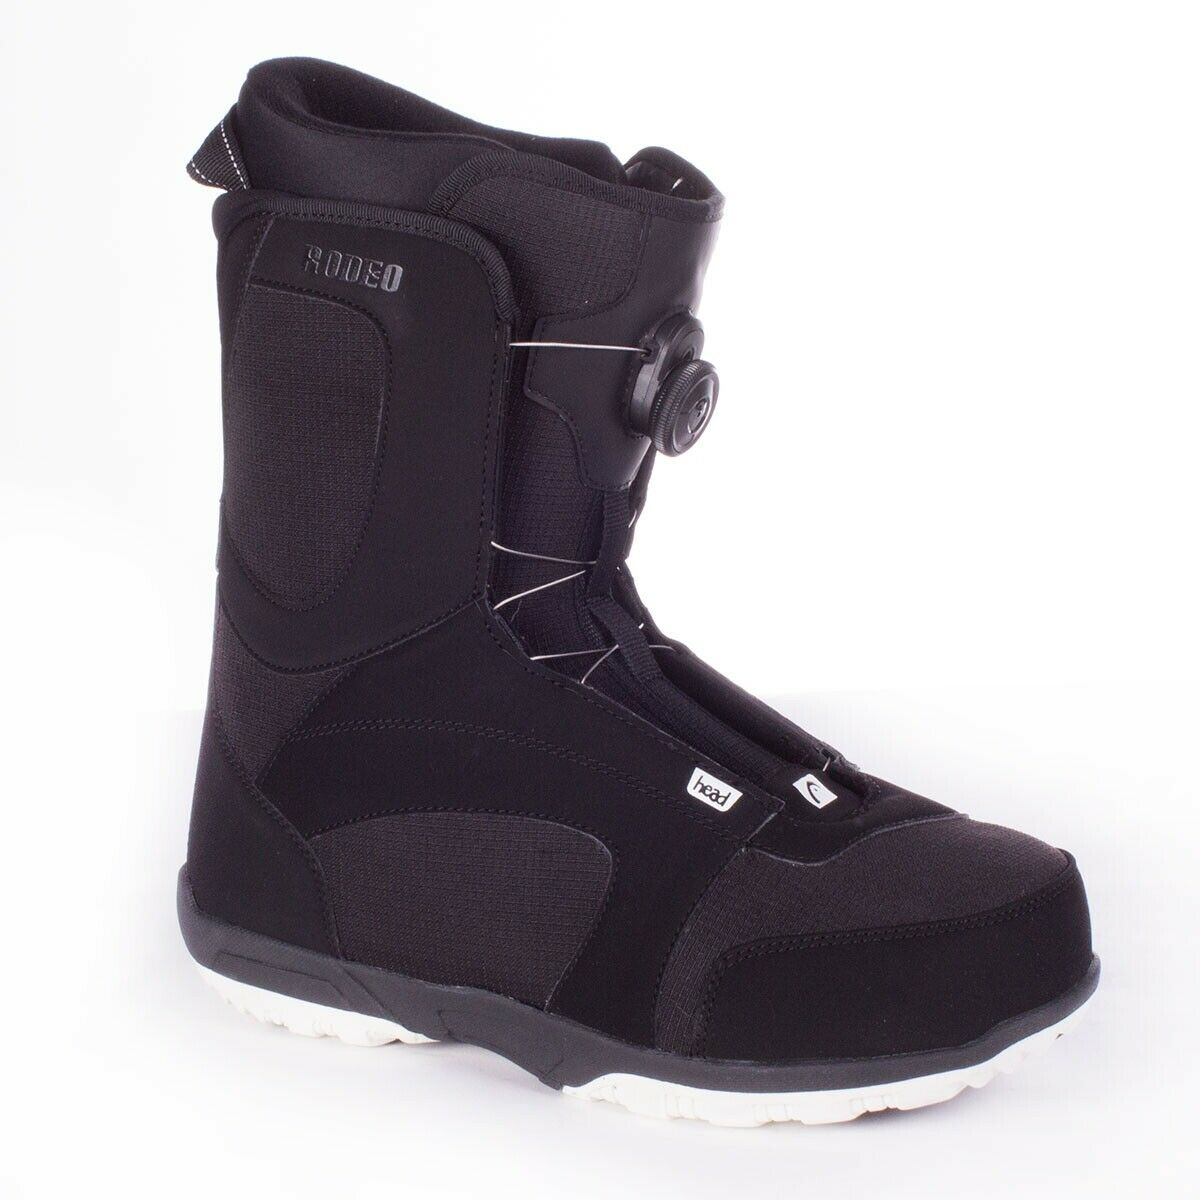 Head Rodeo Boa Snowboard Stiefel 2018 - Out of Box